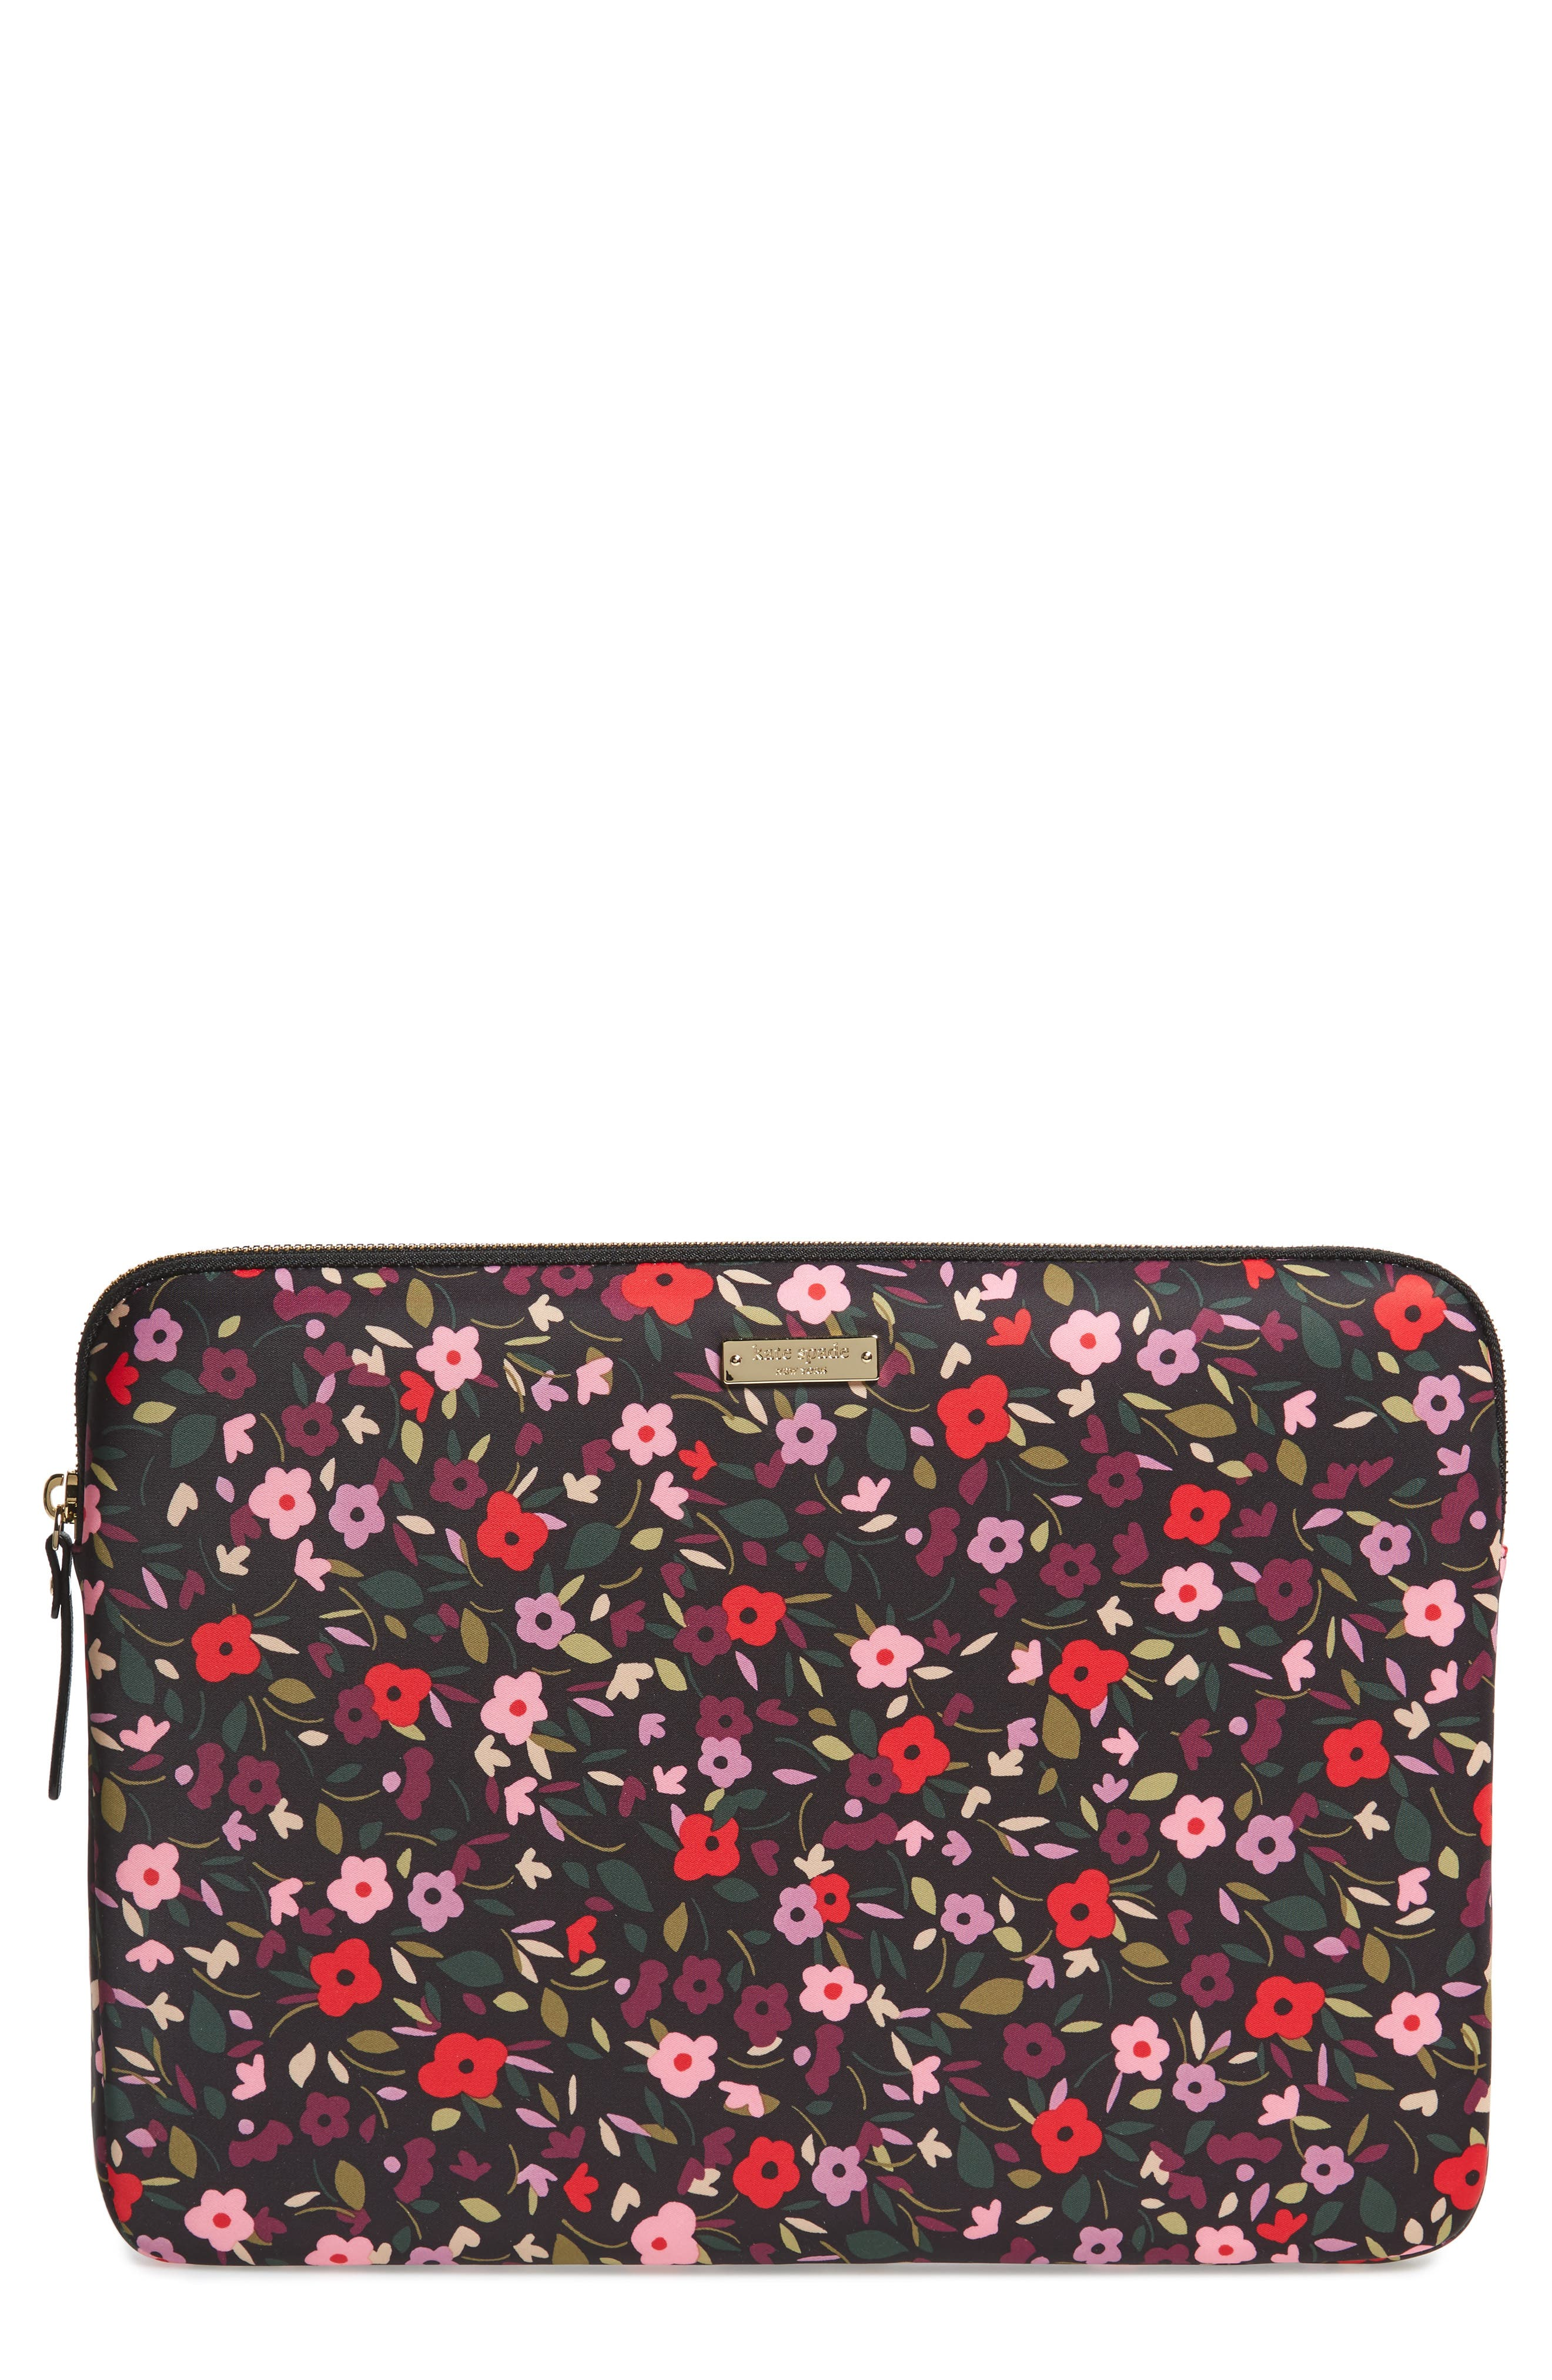 boho floral 13-inch laptop sleeve,                             Main thumbnail 1, color,                             002